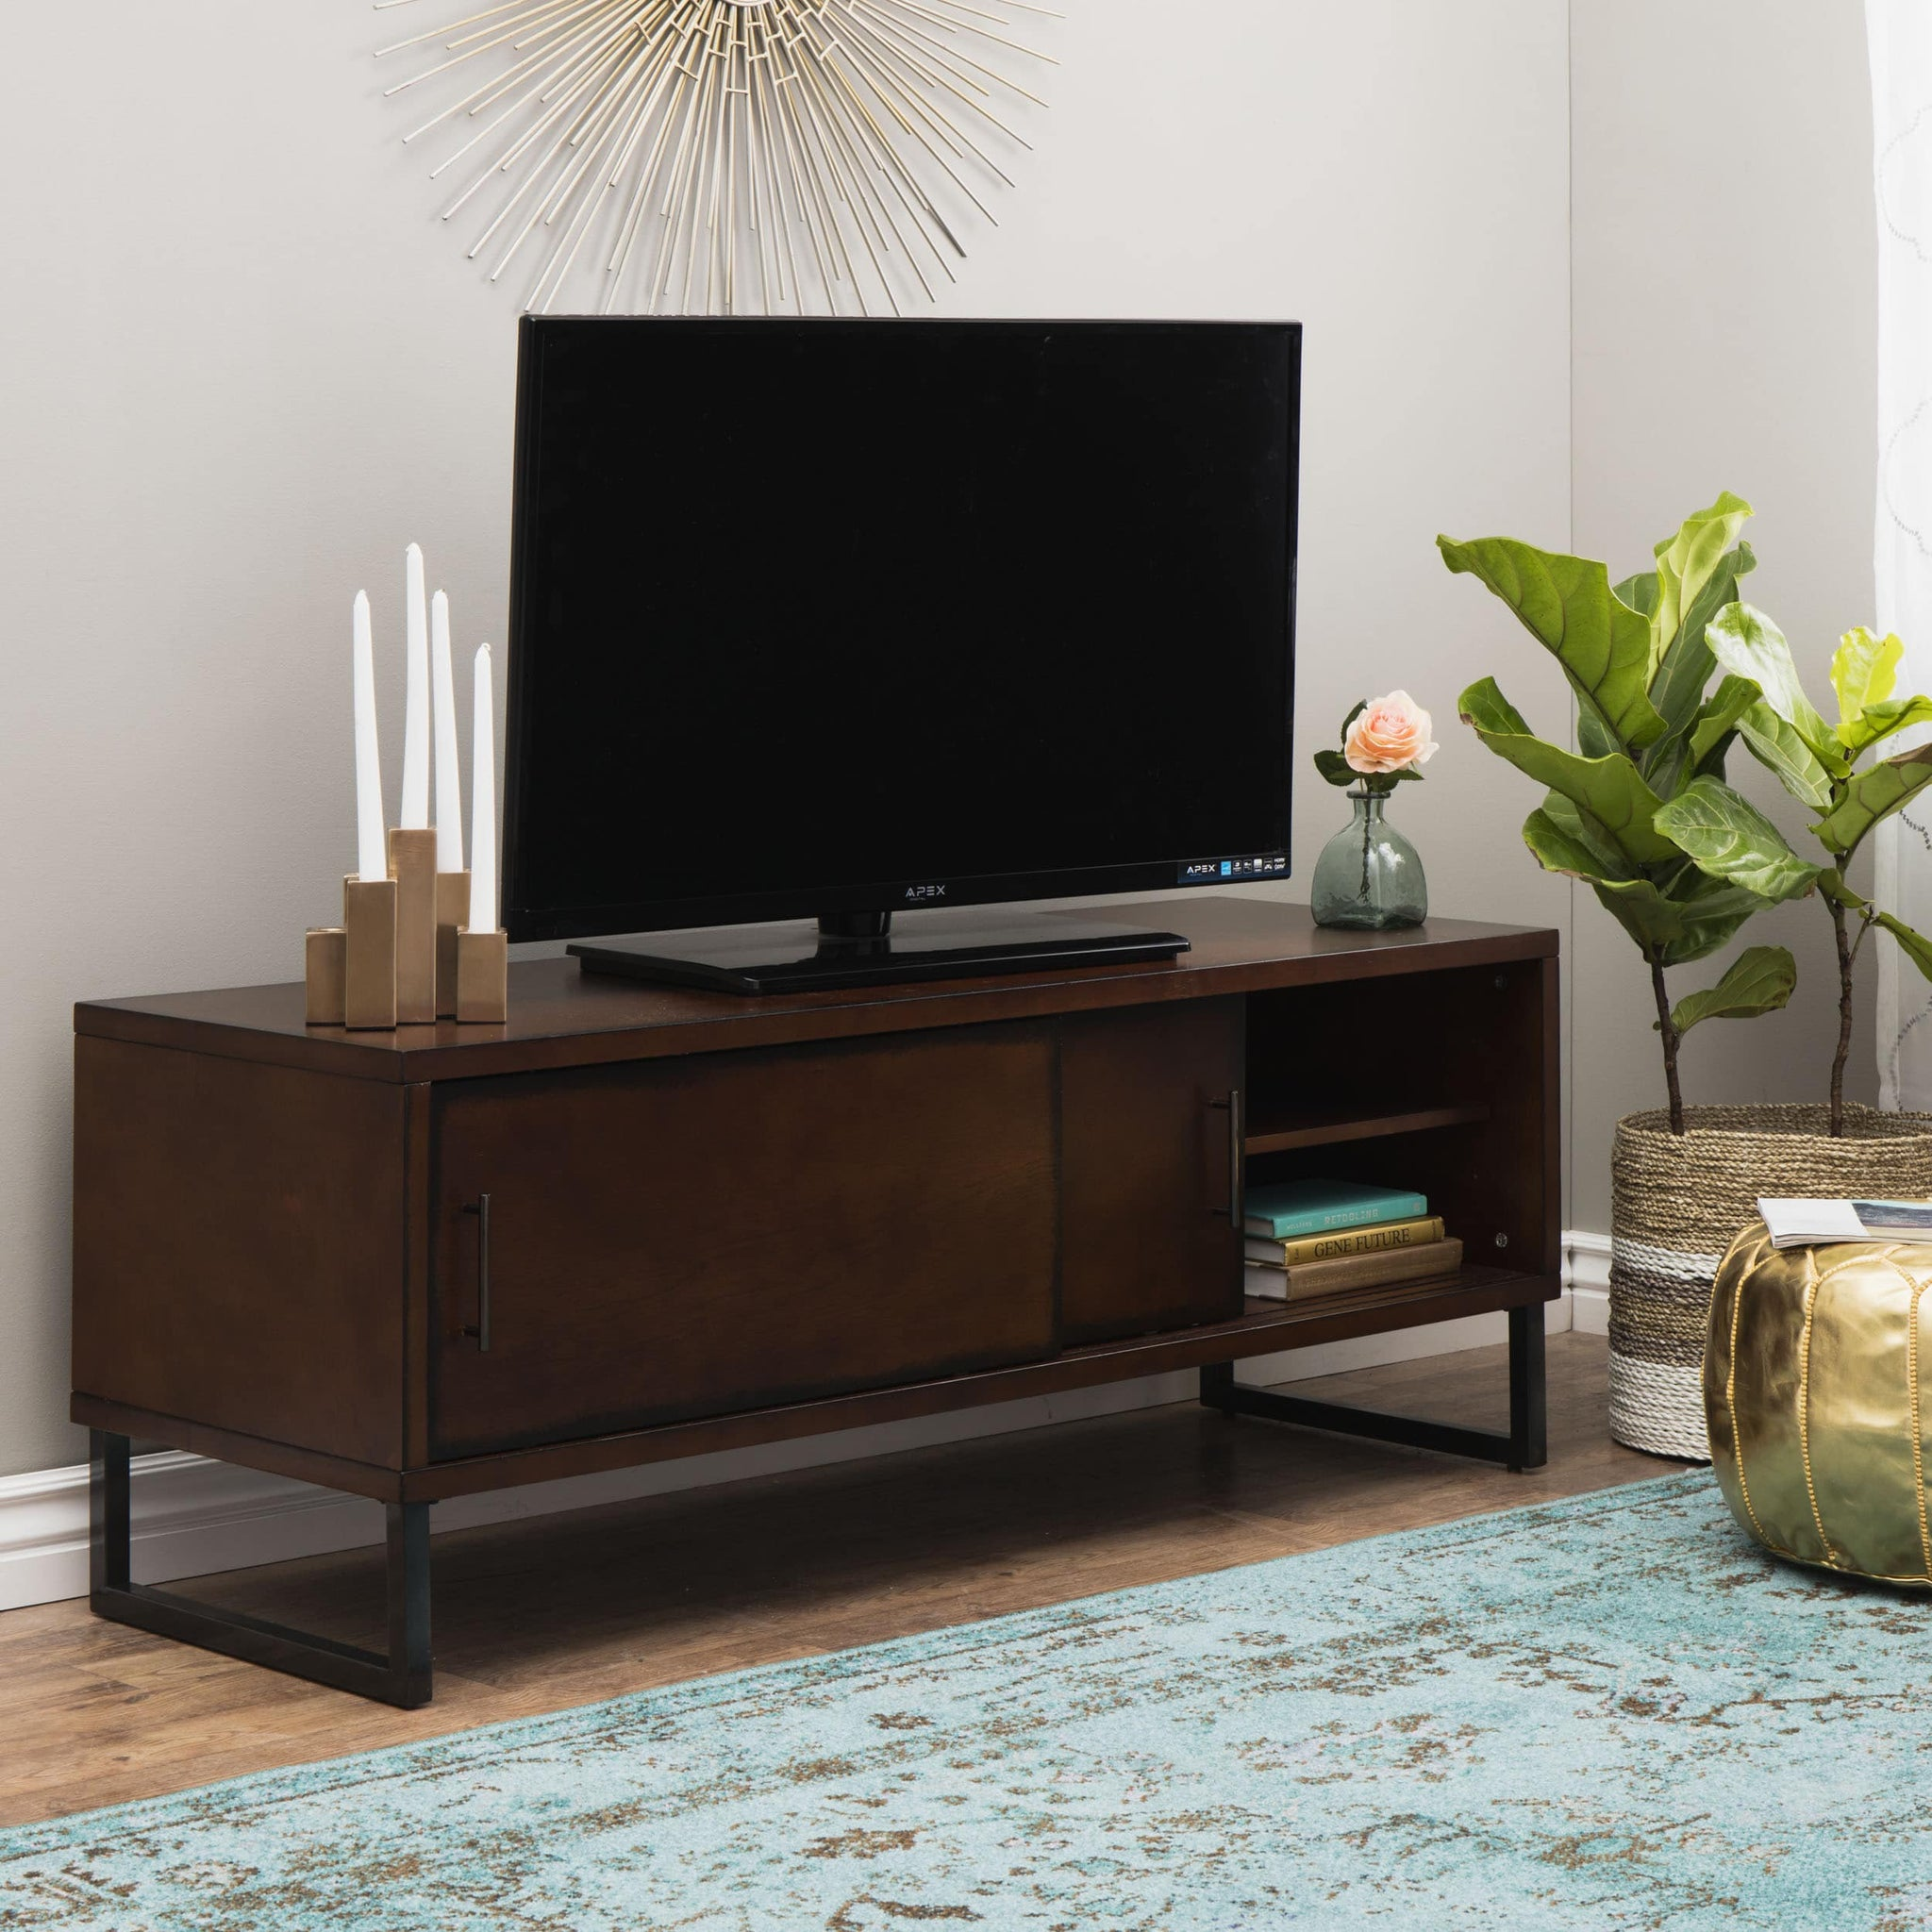 54-inch Entertainment Center